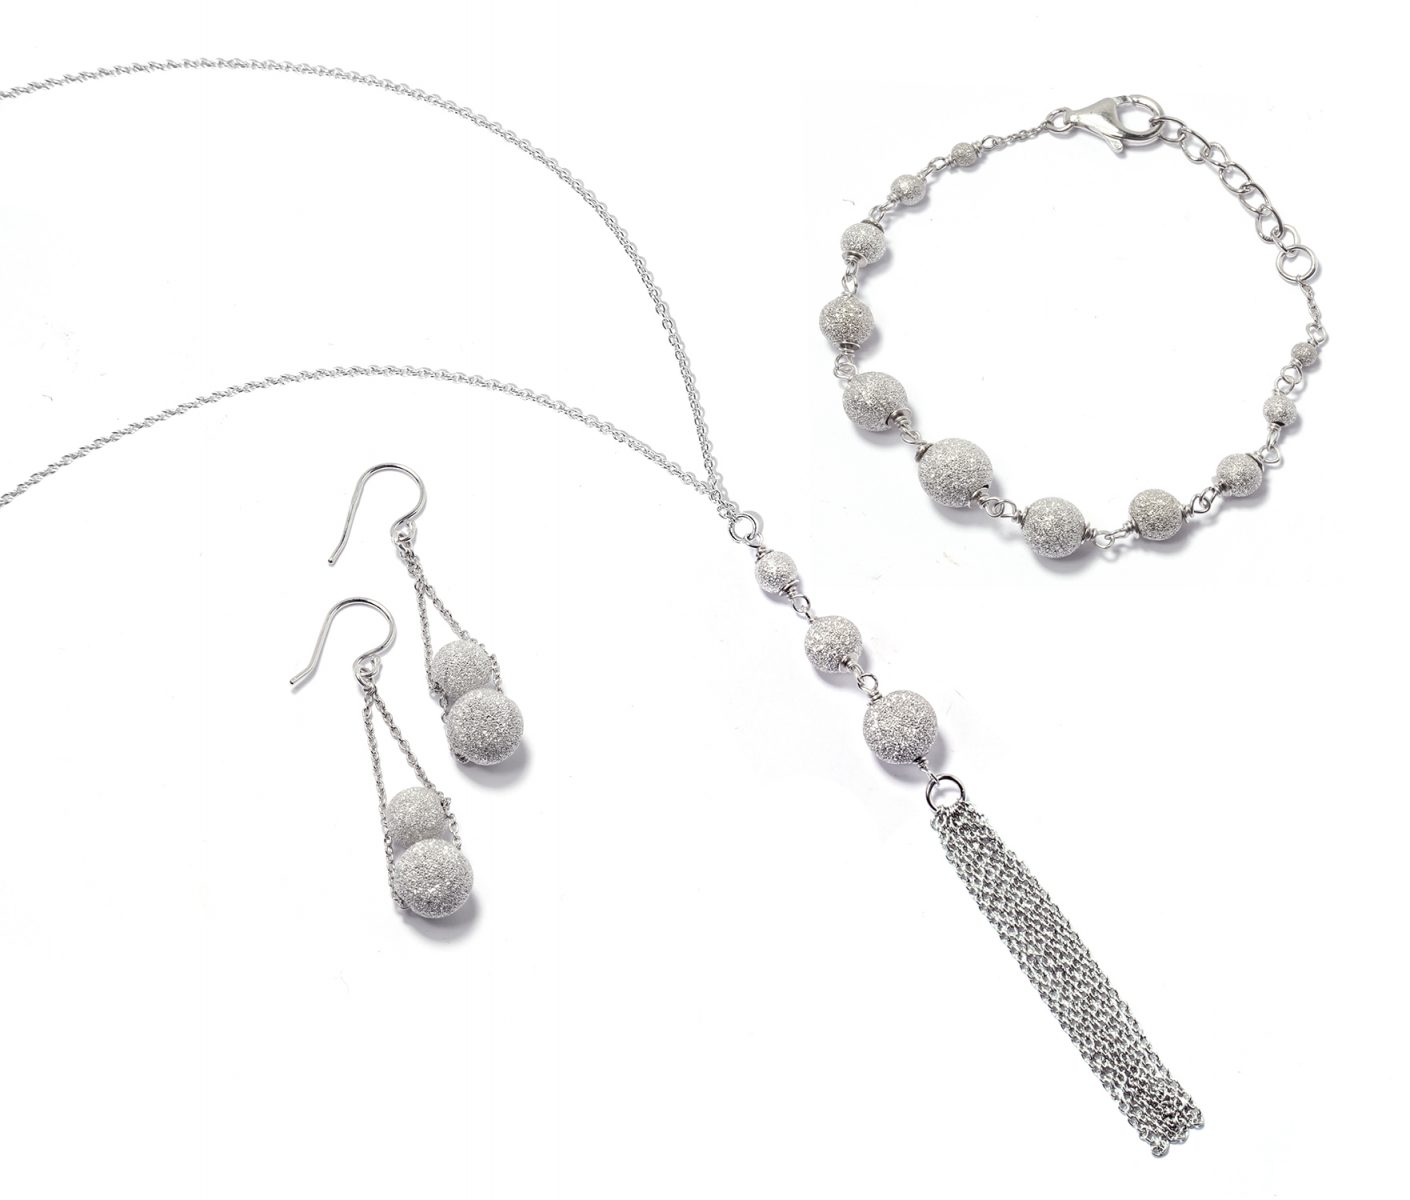 Auction for new silver jewellery fashion collection Lola